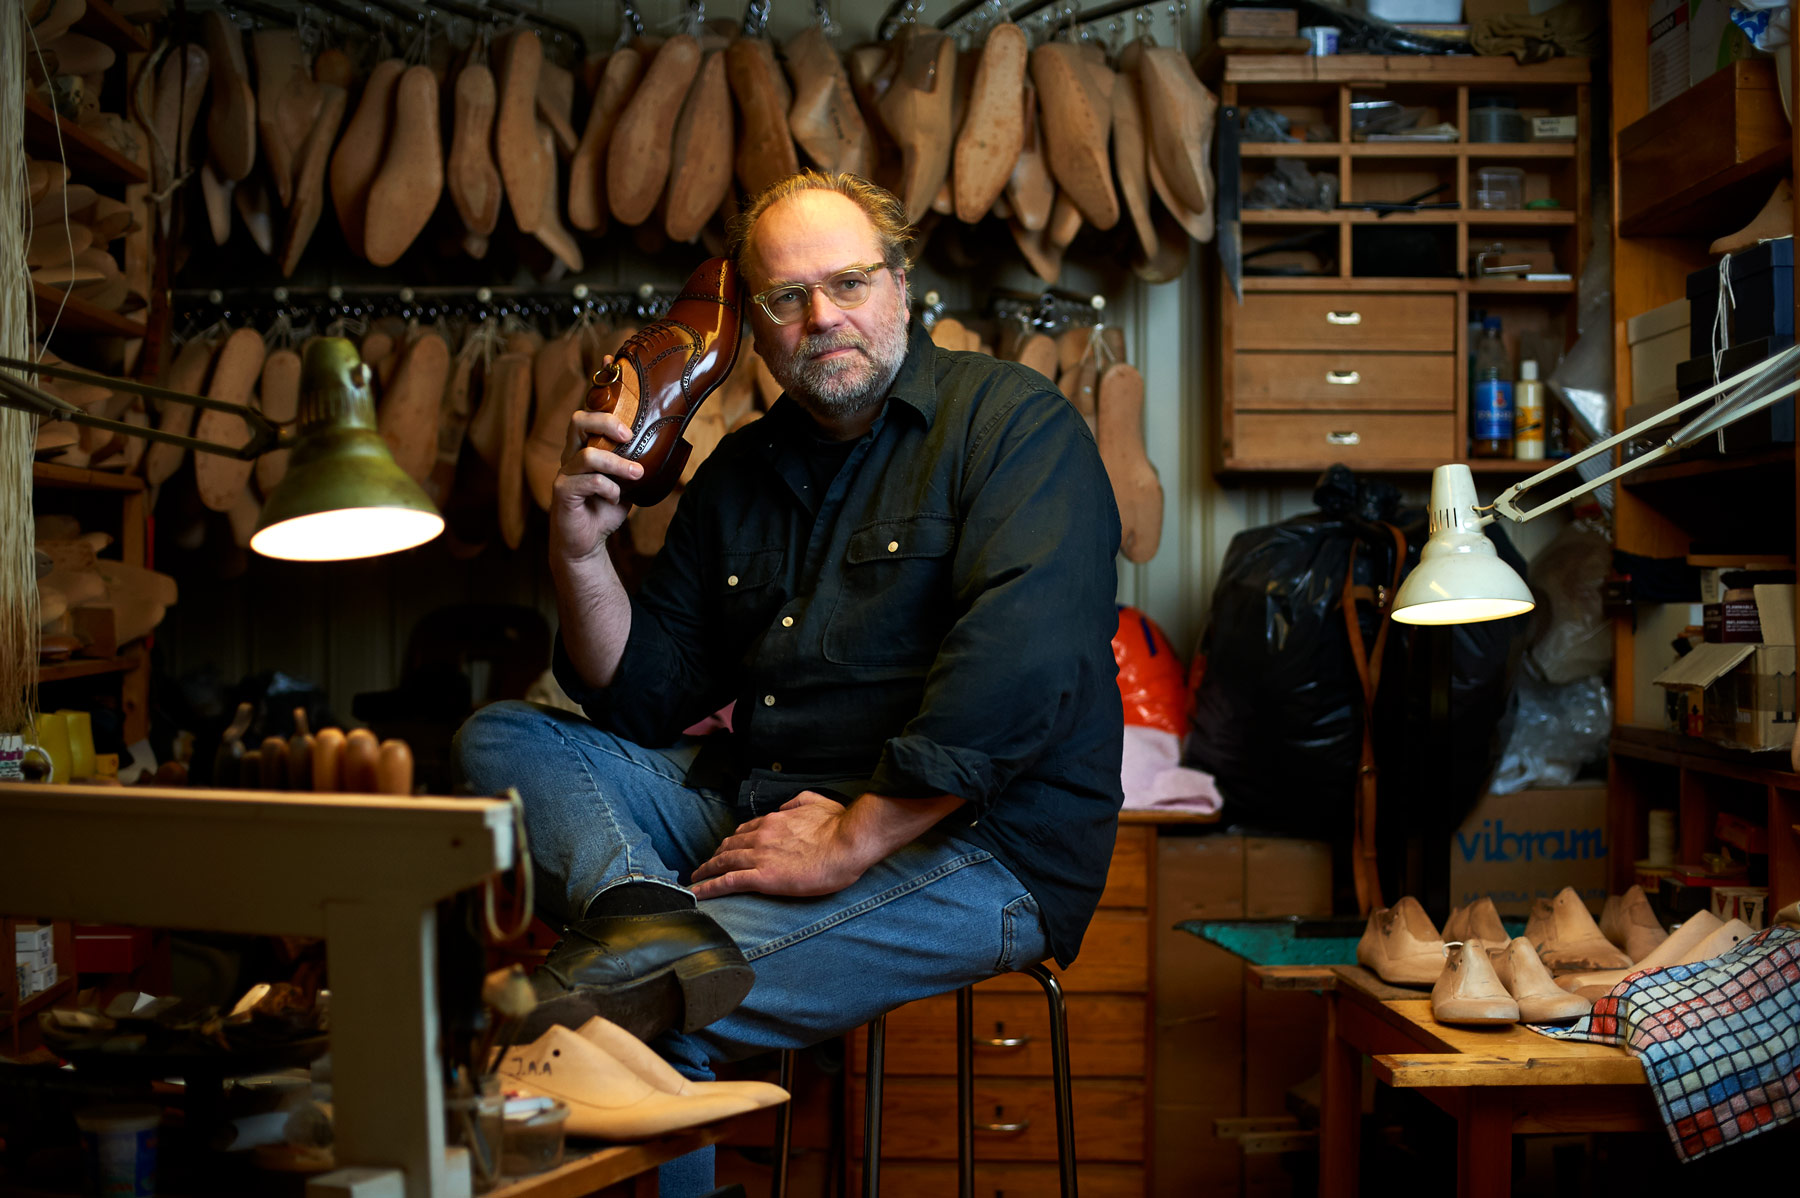 Portrait of Jan Petter Myhre at Bespoke Shoes in Oslo, from the book Mitt Oslo. By Håvard Schei